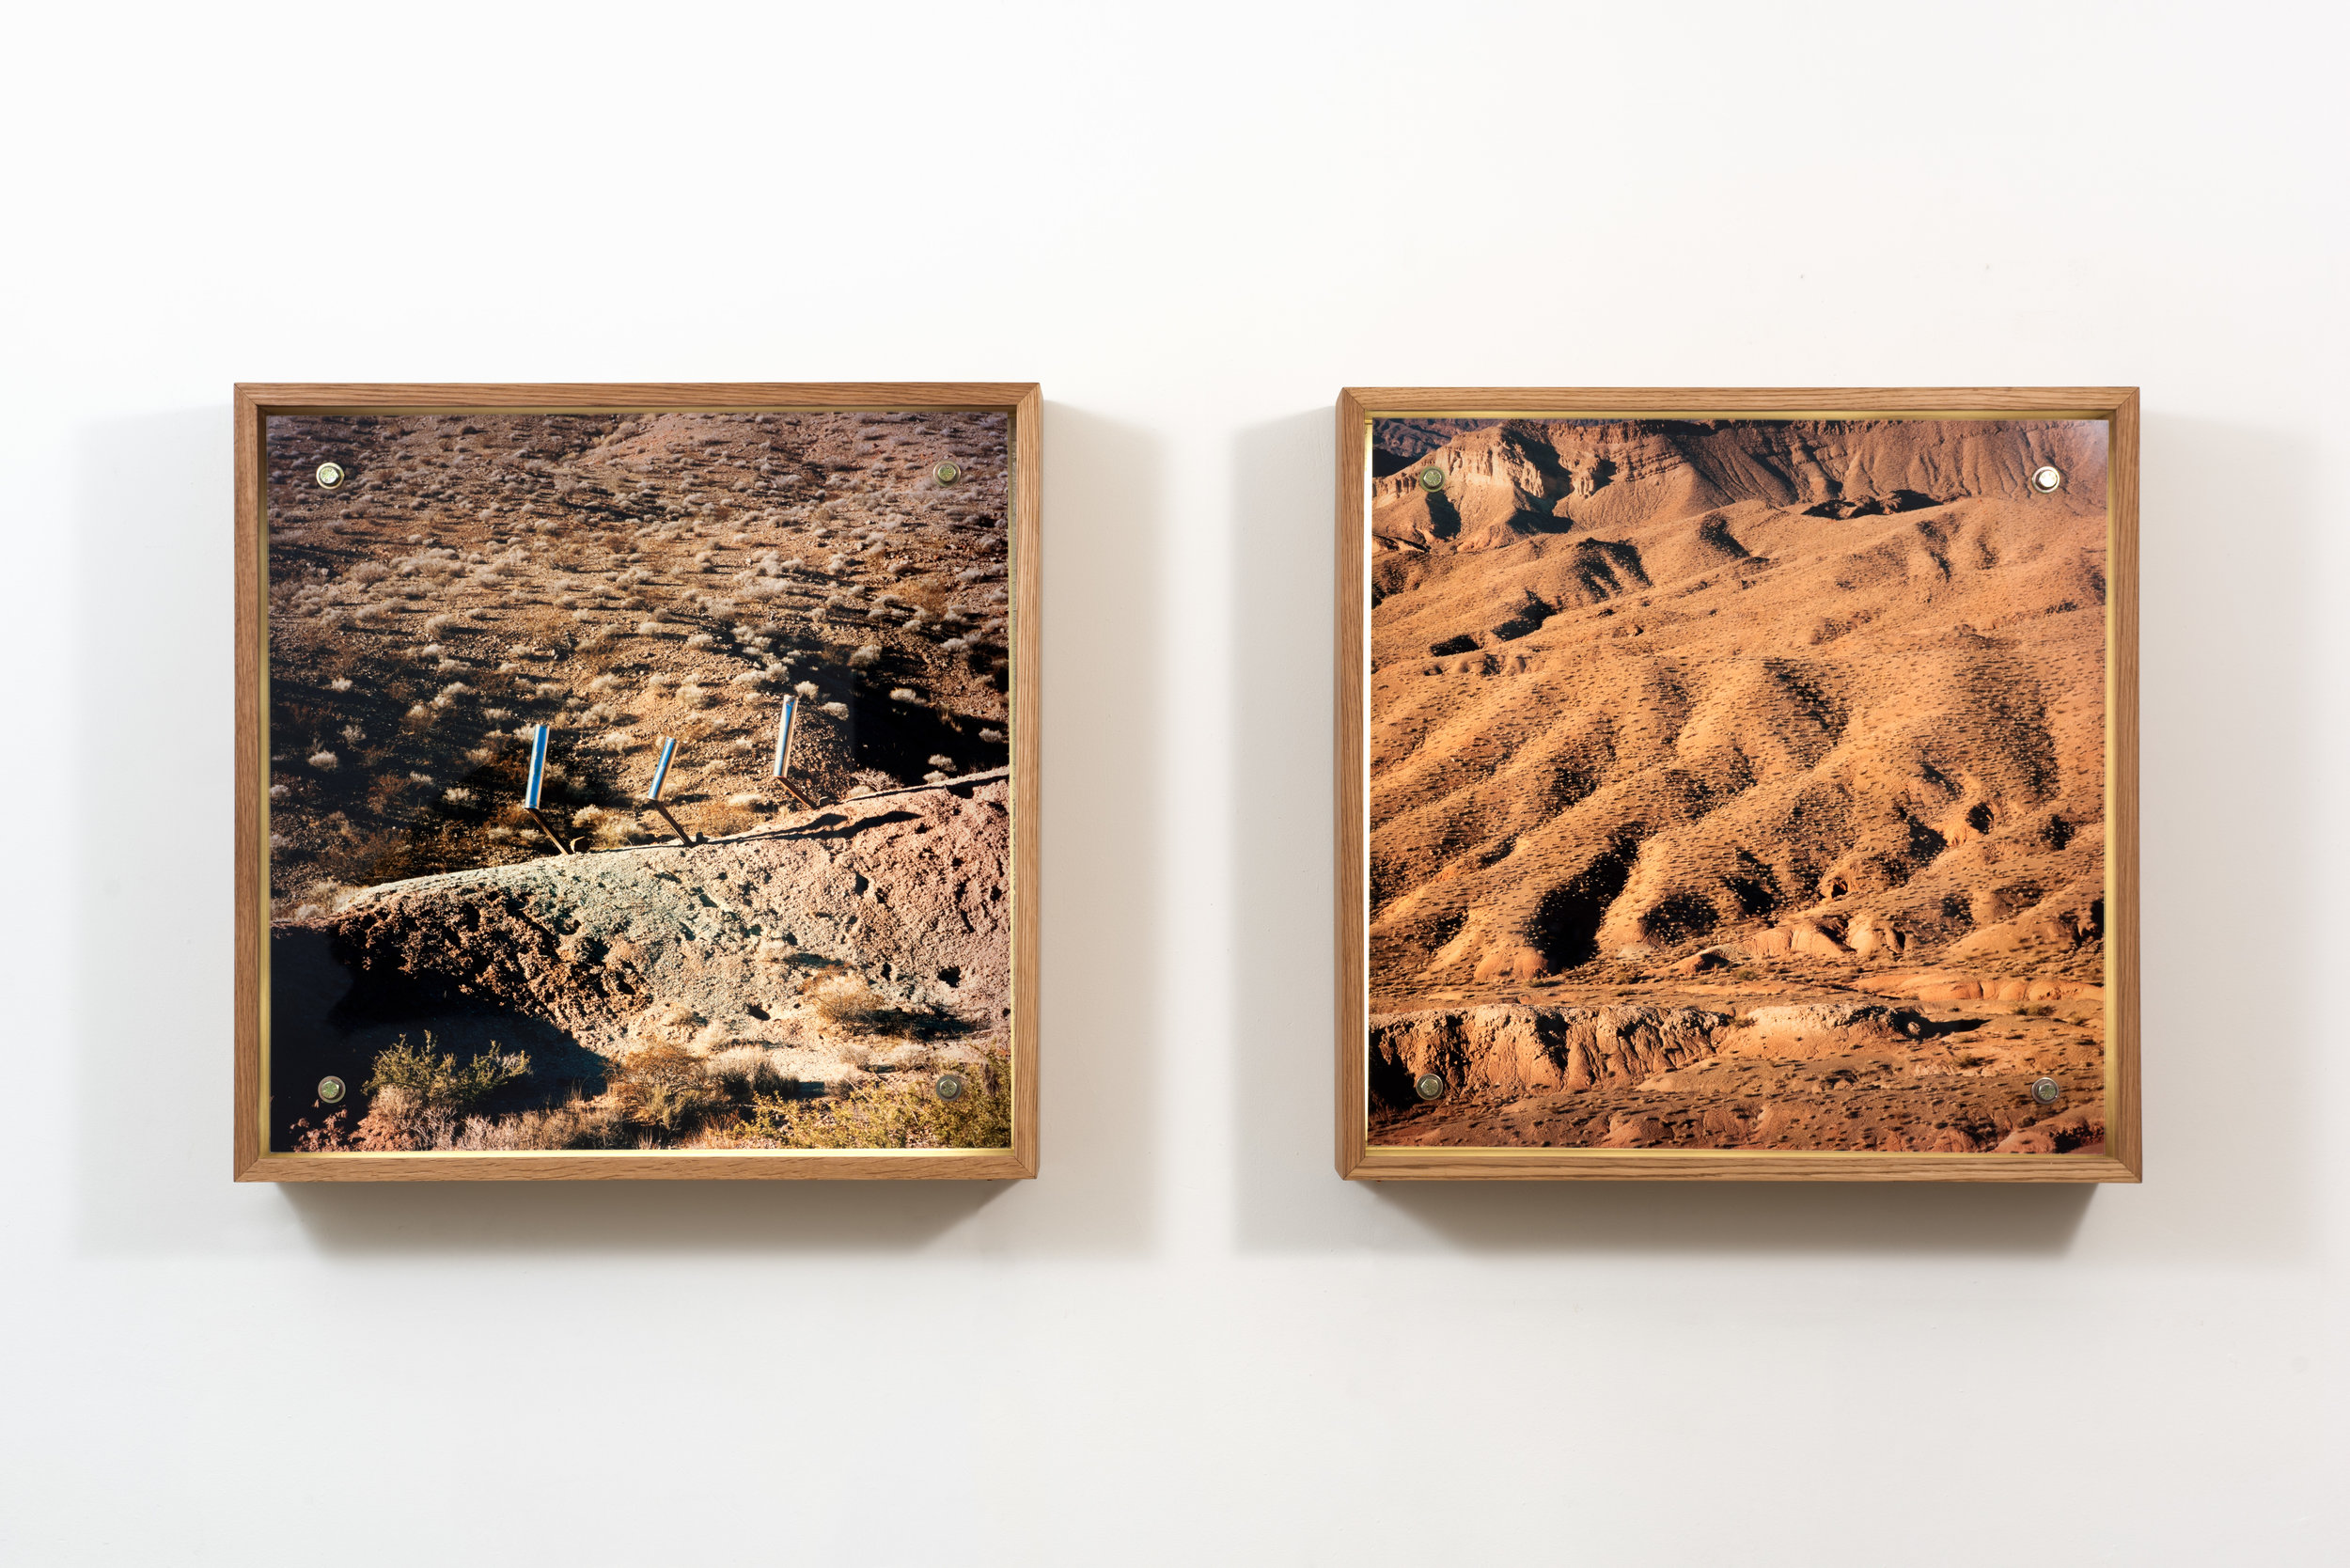 Rachael Browning  Distress Signals #1, Lake Mead , 2018 Chromogenic prints, plexiglass, LED panel, oak frame 26 x 25 3/4 inches each; installation dimensions variable